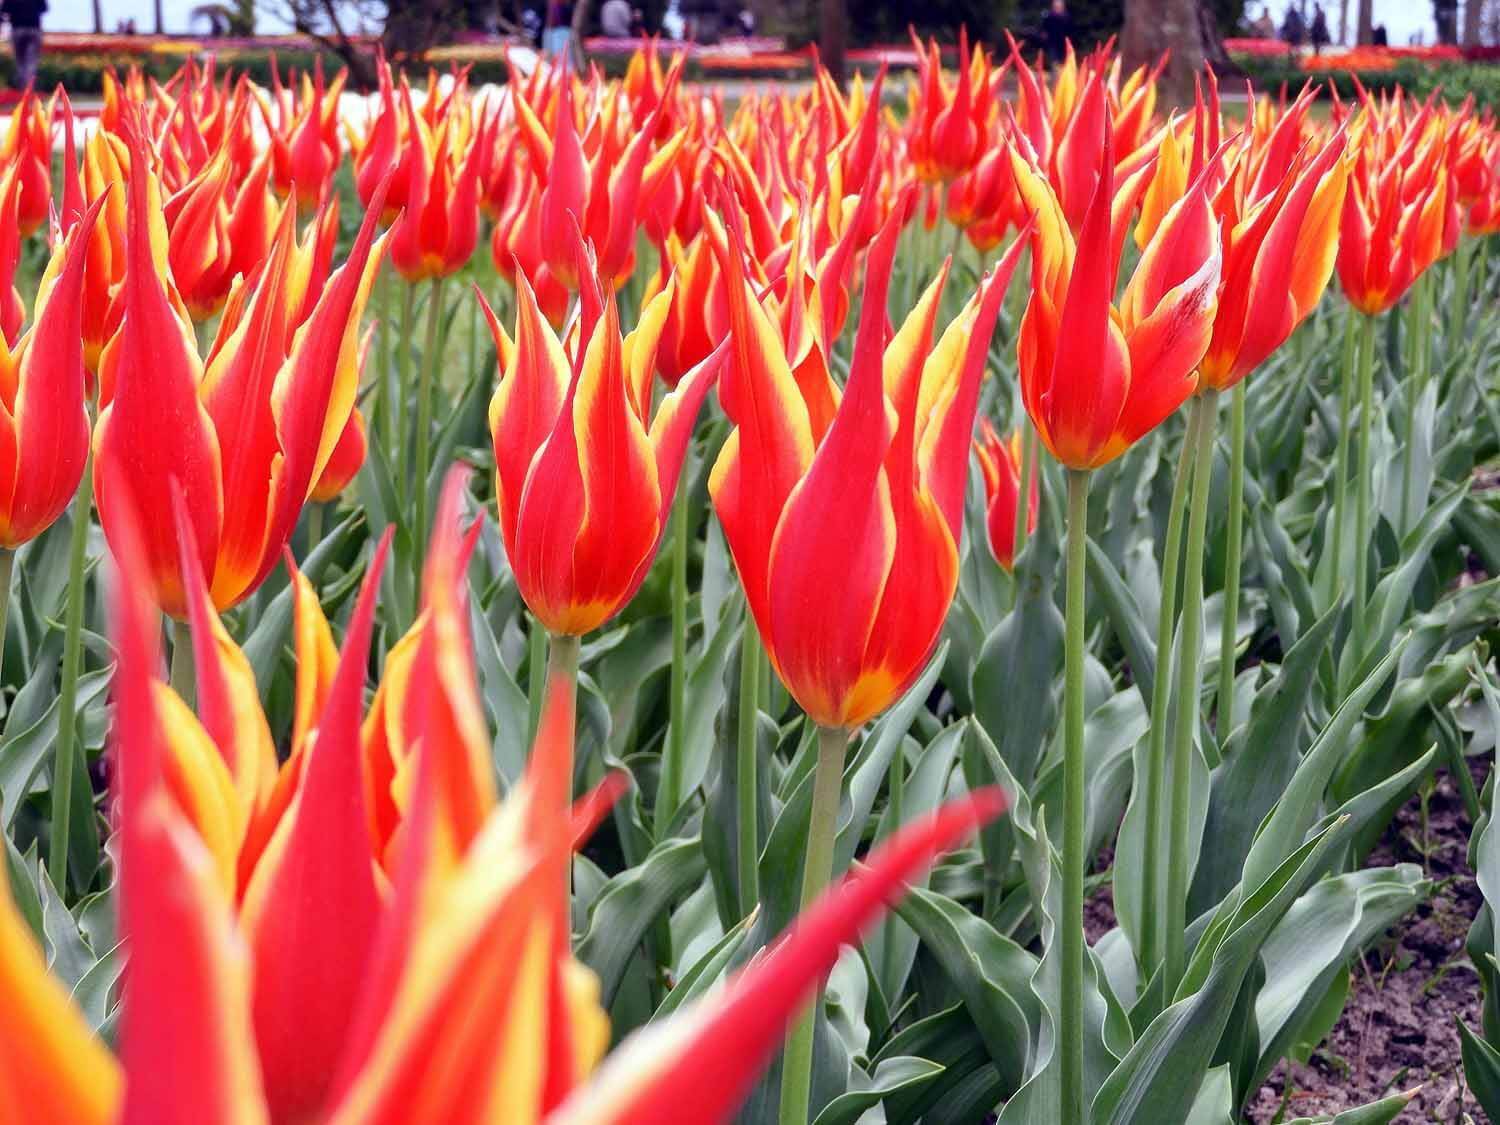 switzerland-luassane-morges-tulip-festival-red-yellow.jpg